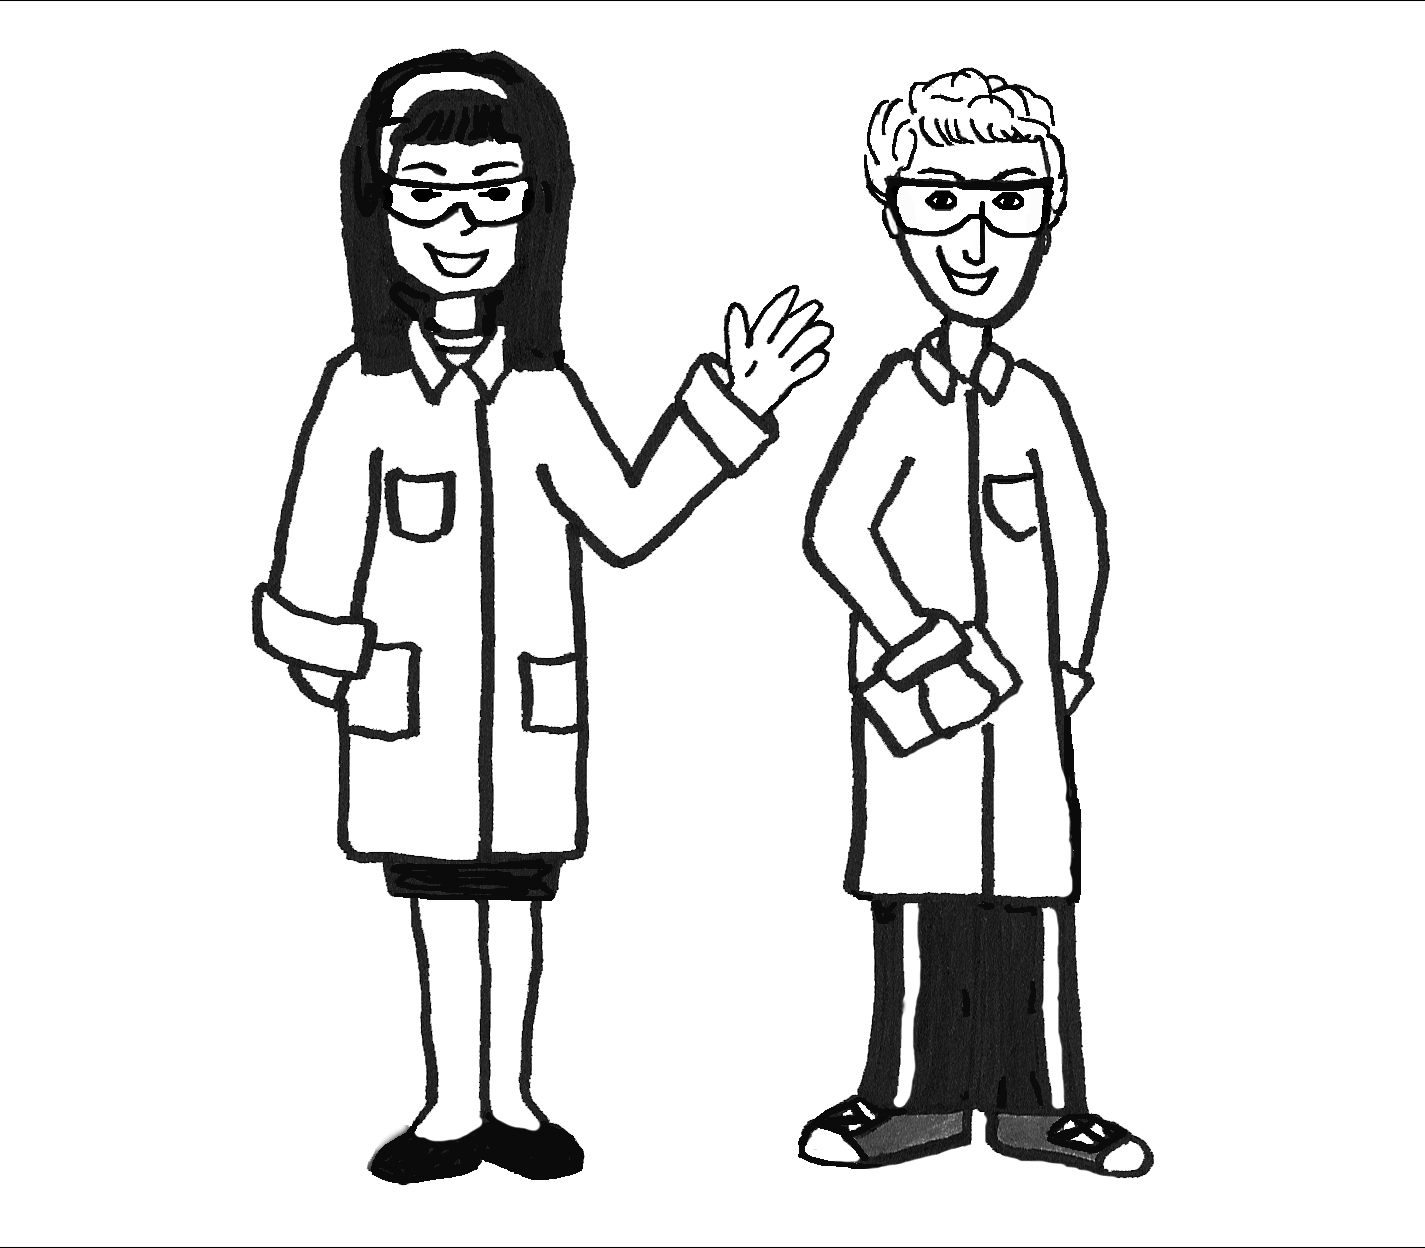 safety equipment coloring pages | Science Lab Safety Comics Sketch Coloring Page